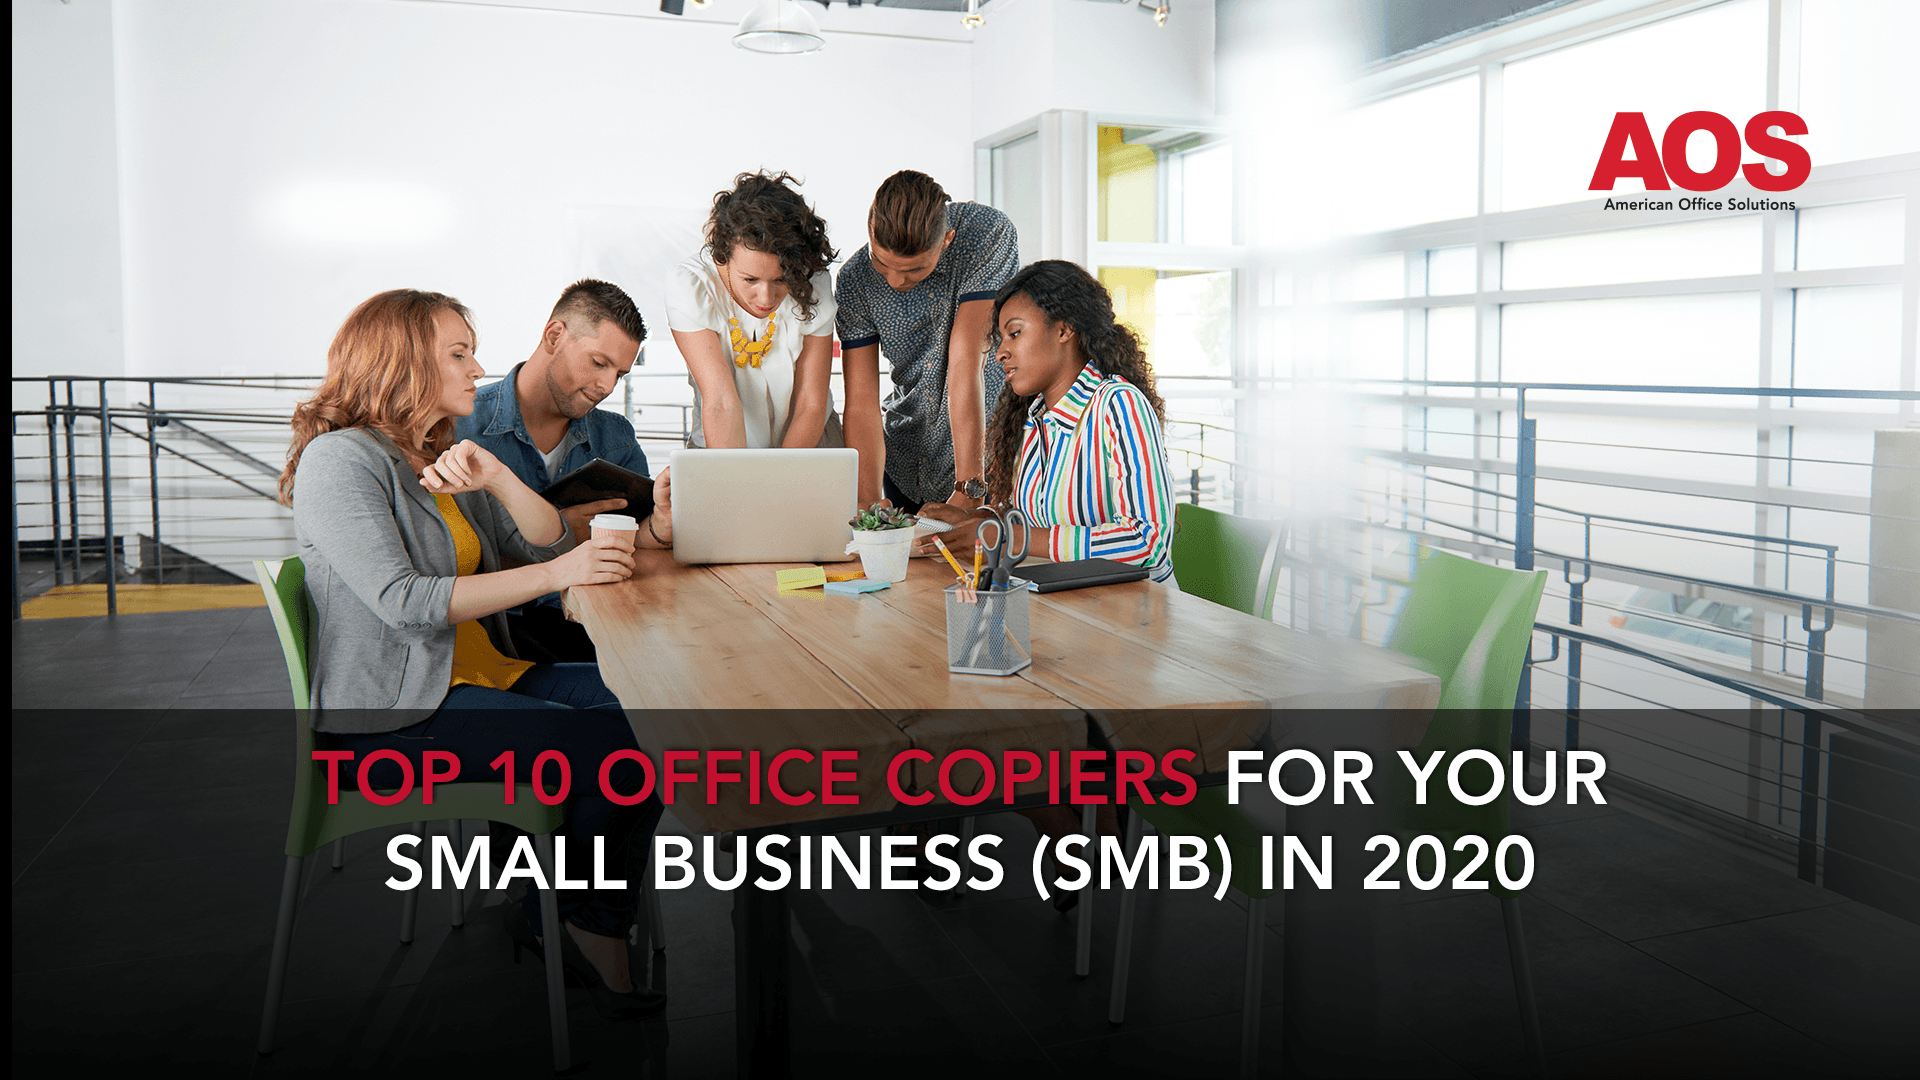 Top 10 Office Copiers For Your SMB in 2020